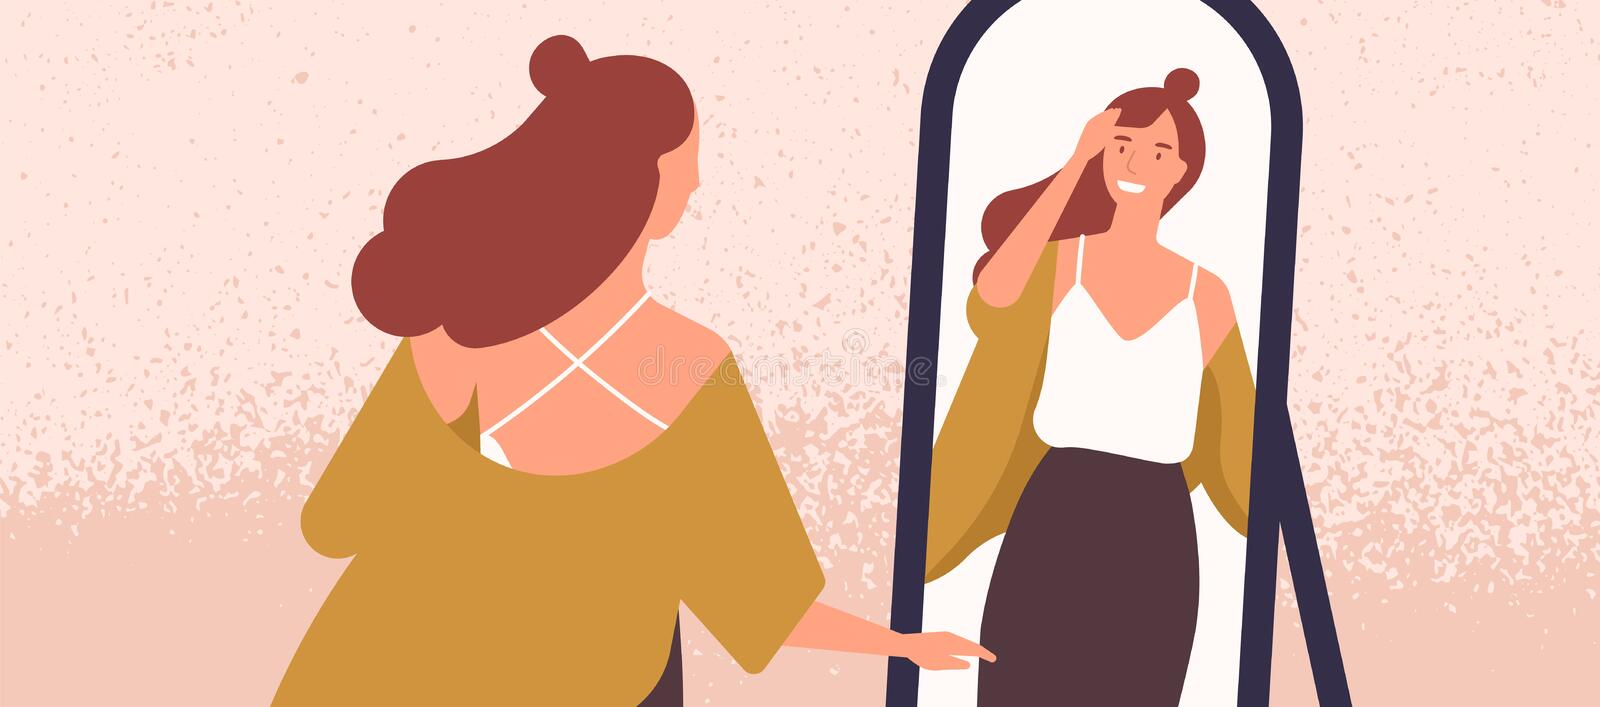 Beautiful woman looking at mirror flat vector illustration. Self acceptance and confidence concept. Young fashionable vector illustration